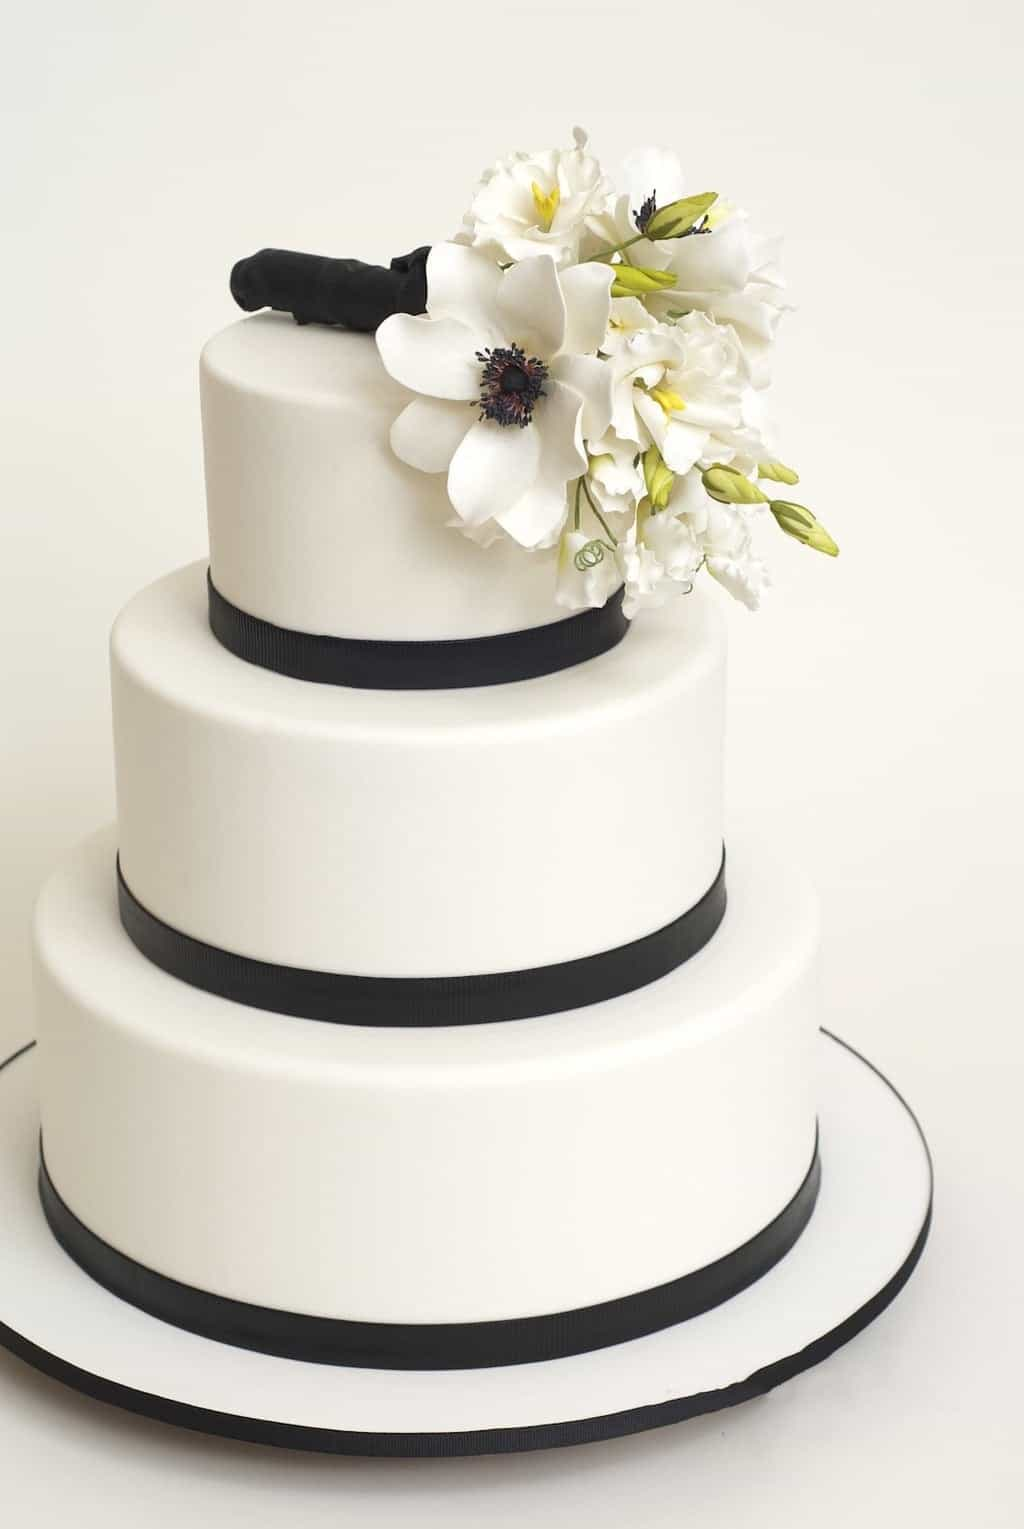 Classic Black And White Wedding Cake (View 16 of 16)